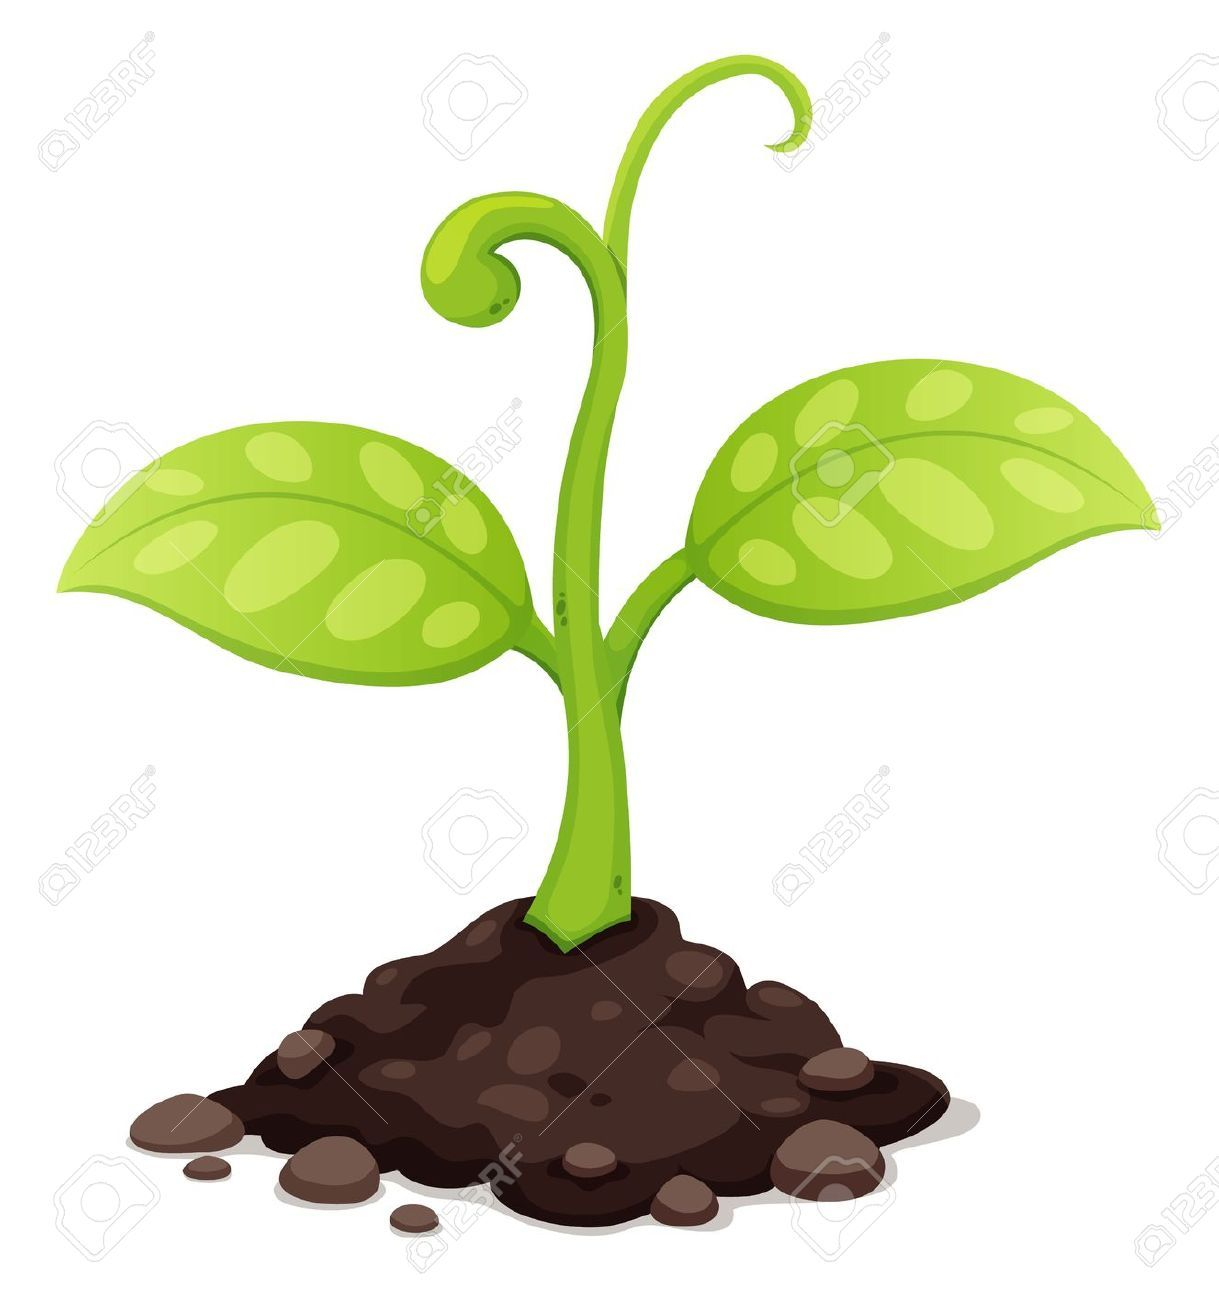 Plant grow clipart vector download Seed Growing Images, Stock Pictures, Royalty Free Seed ... vector download